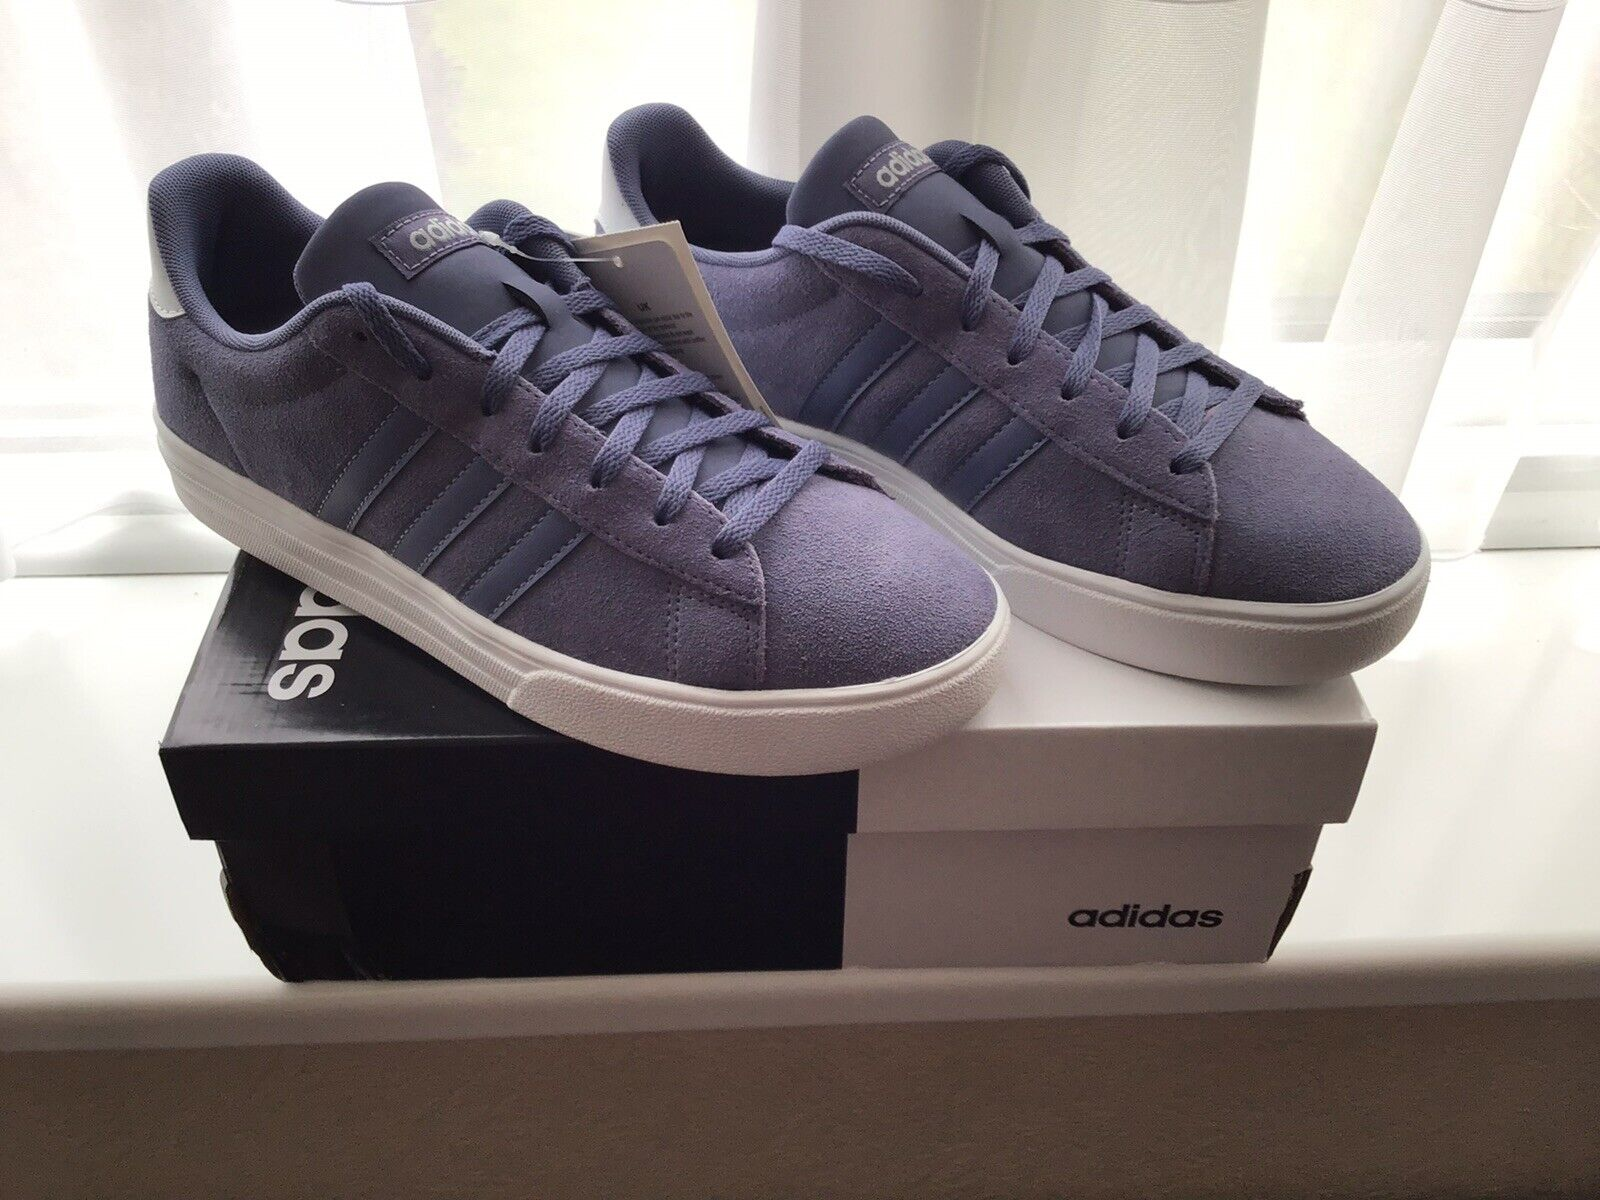 Adidas Daily 2.0 Trainers In Indigo - Size 7